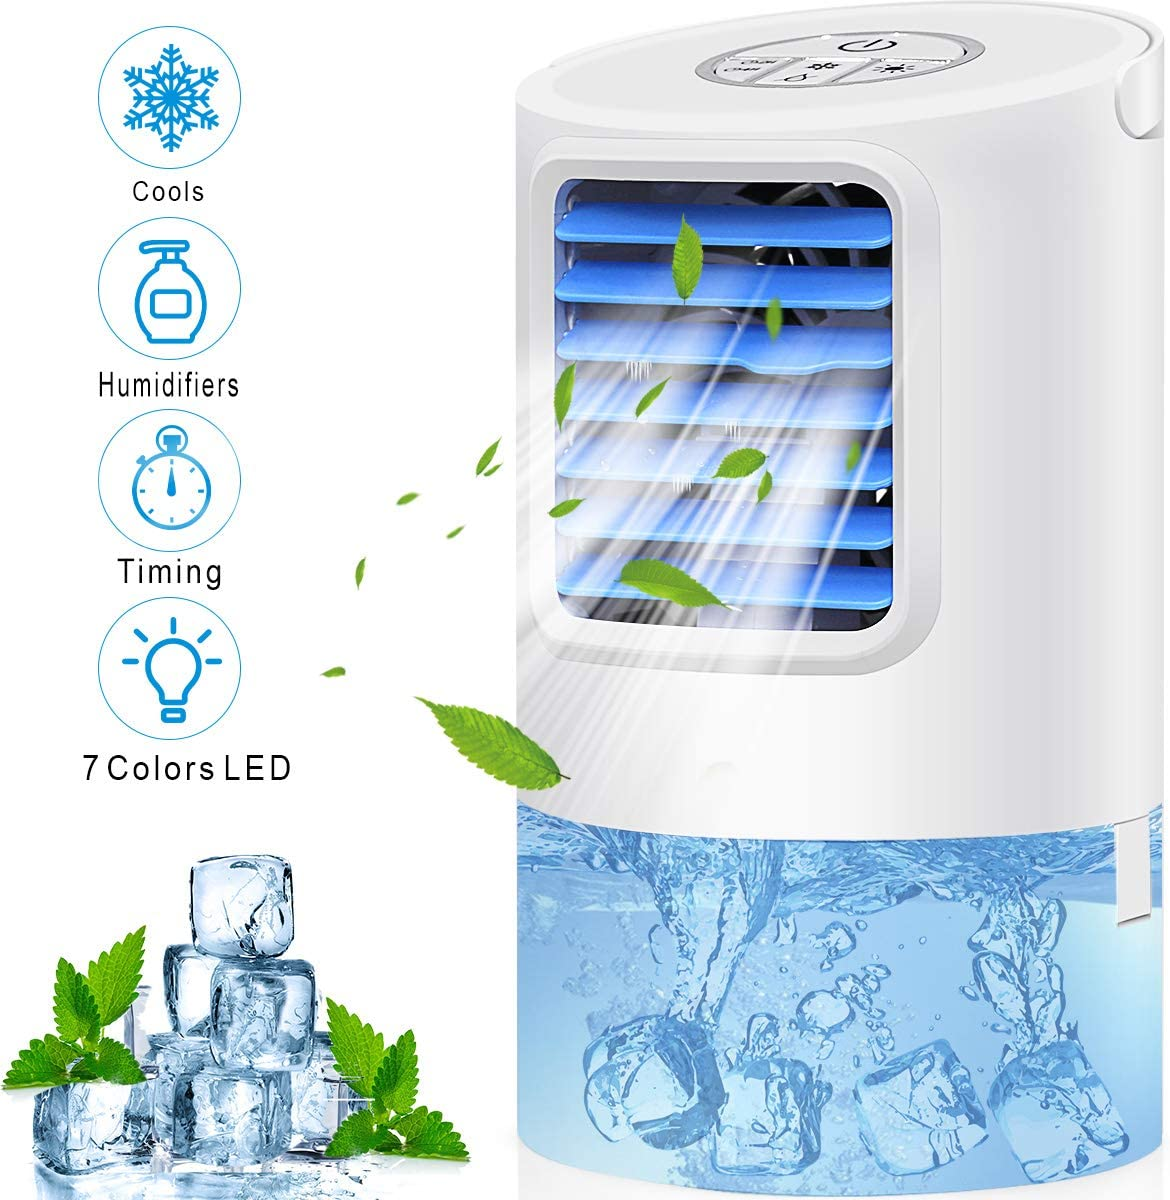 Humidifiers Air Conditioner Fan, Personal Desk Fan Space Air Cooler Mini Portable Table Evaporative AC Ultra-Quiet Purifier Cooling Fan with Handle and 7 Colors LED Lights for Home, Office, Dorm